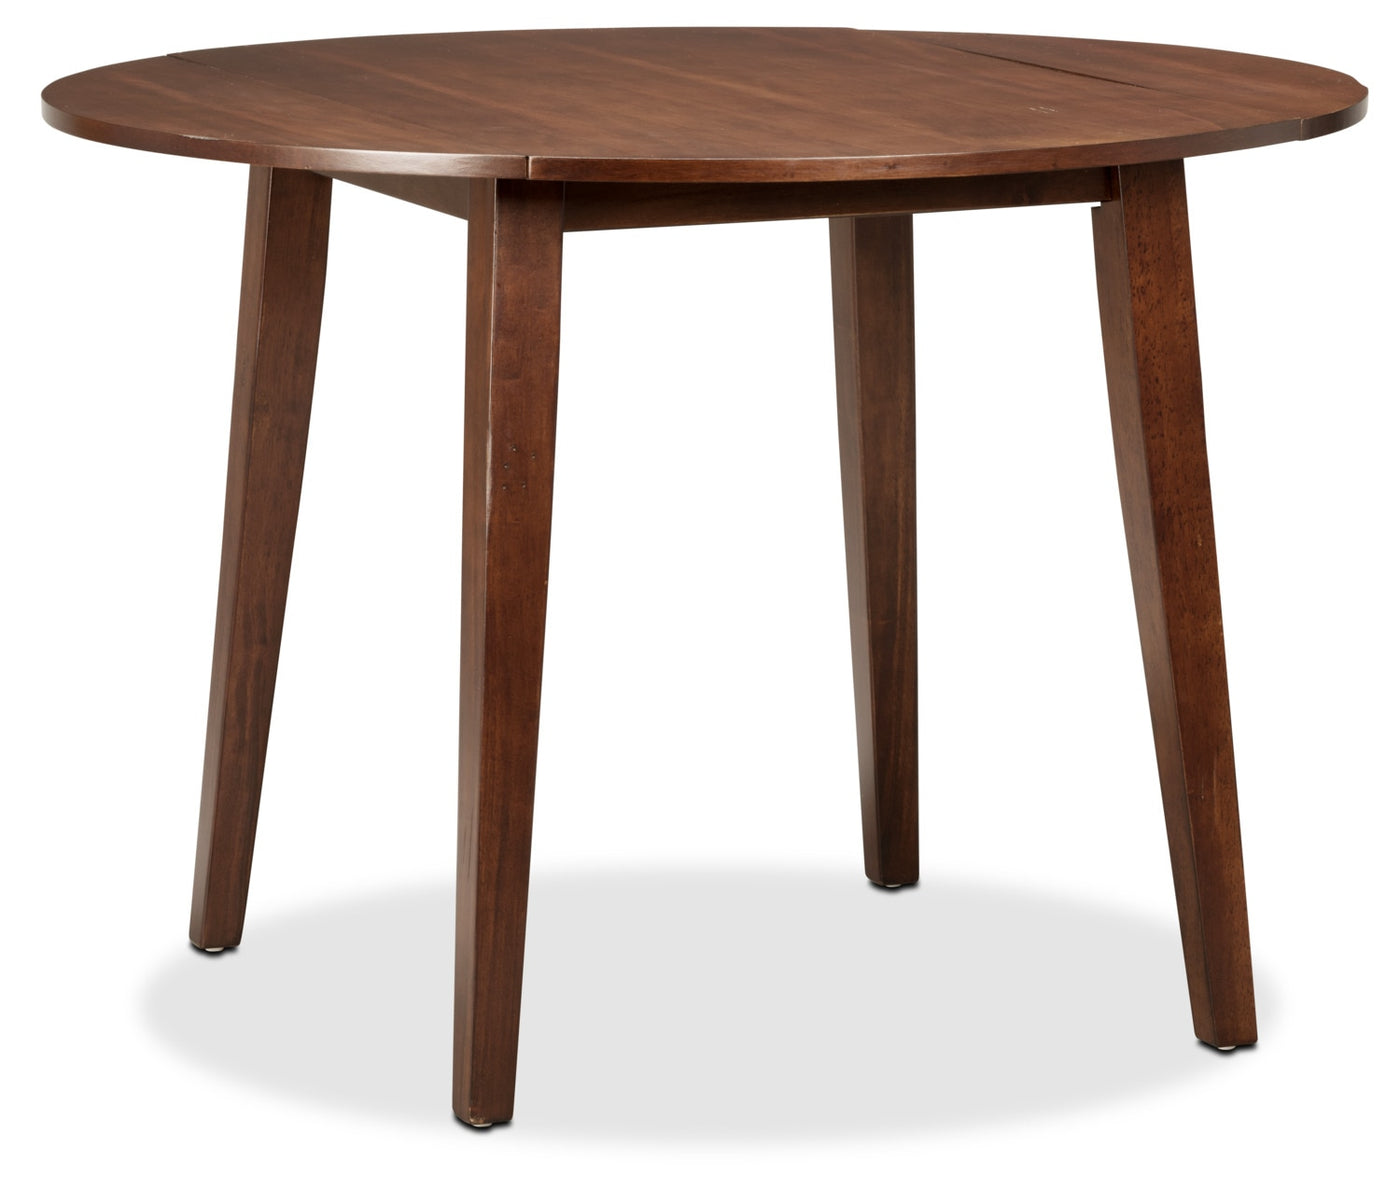 Adara Round Drop Leaf Dining Table The Brick